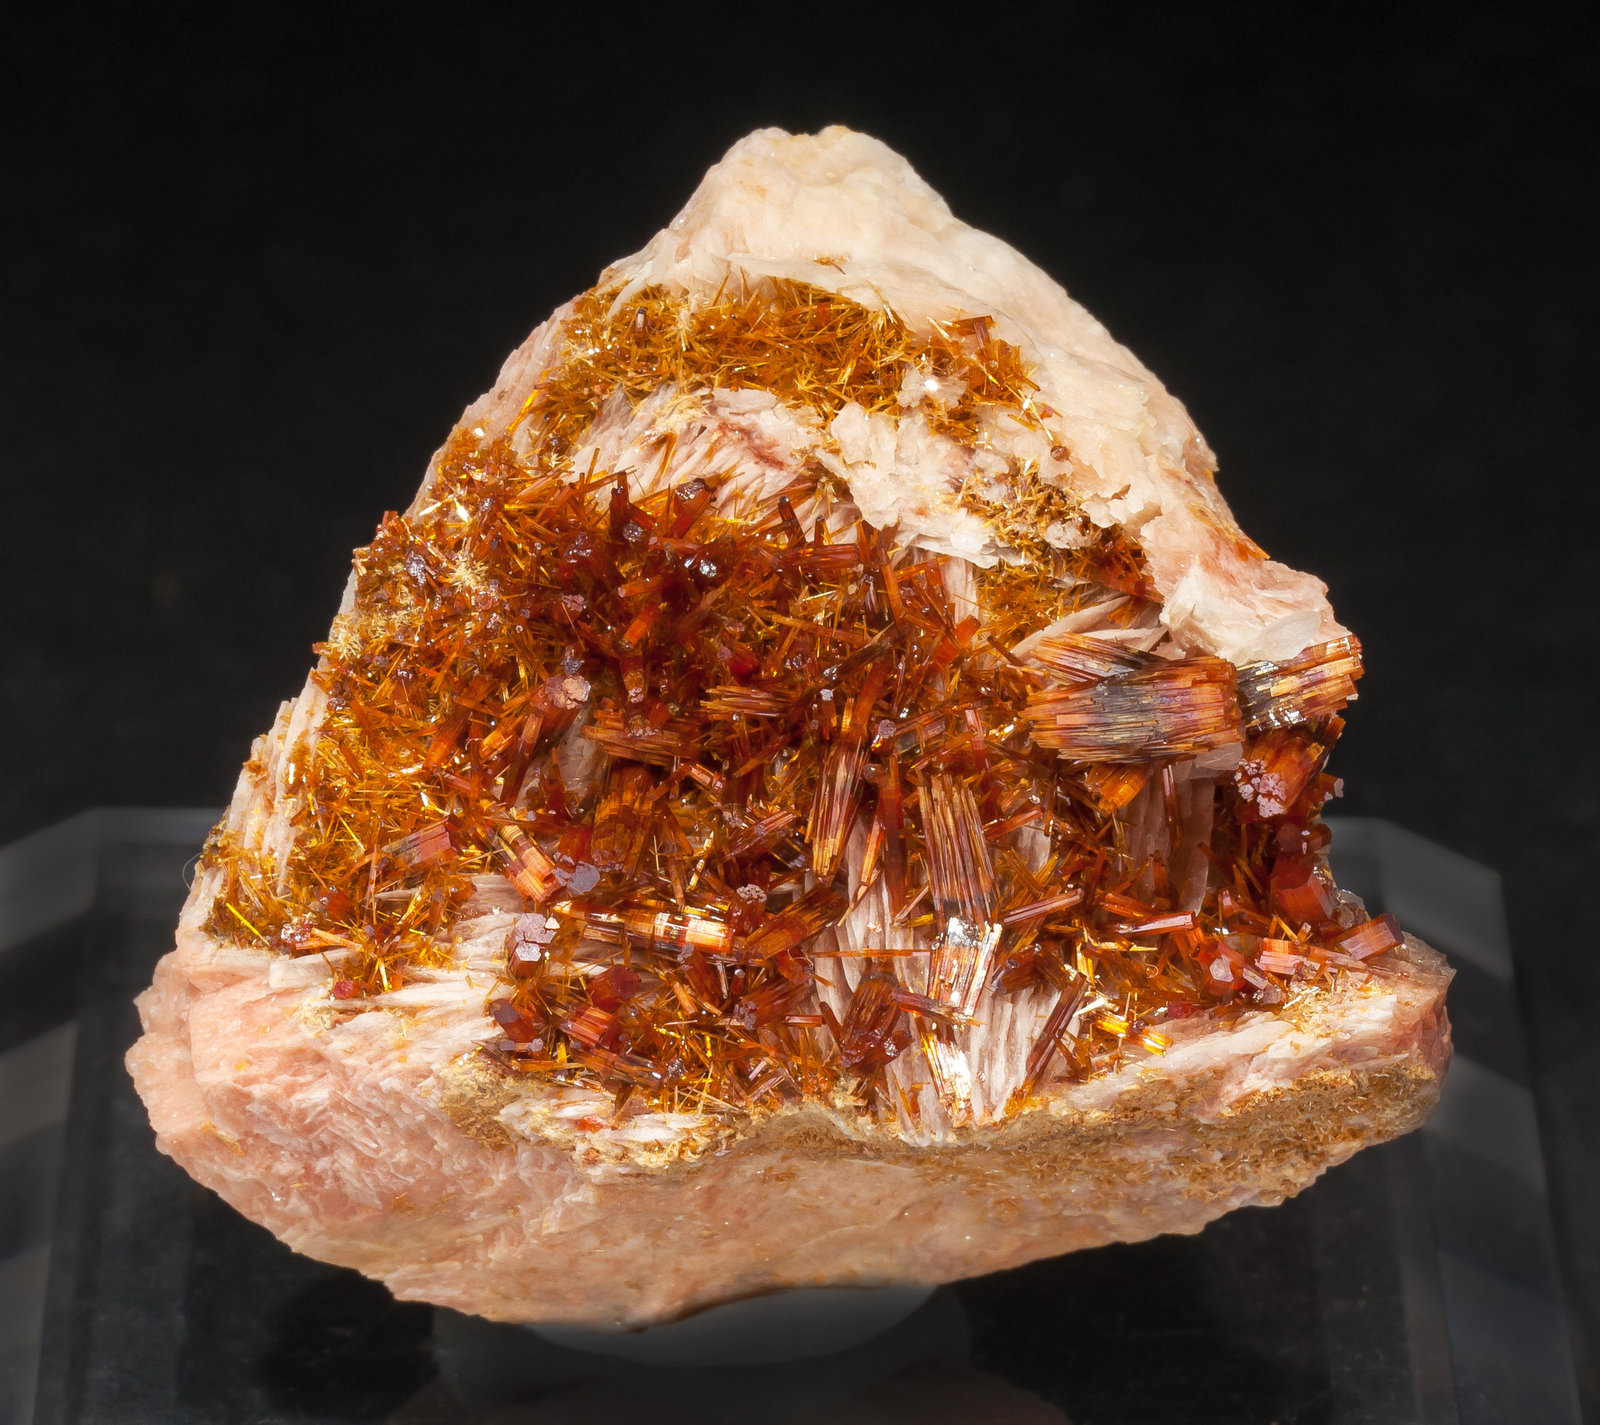 specimens/s_imagesAM0/Vanadinite-EG27AM0f.jpg